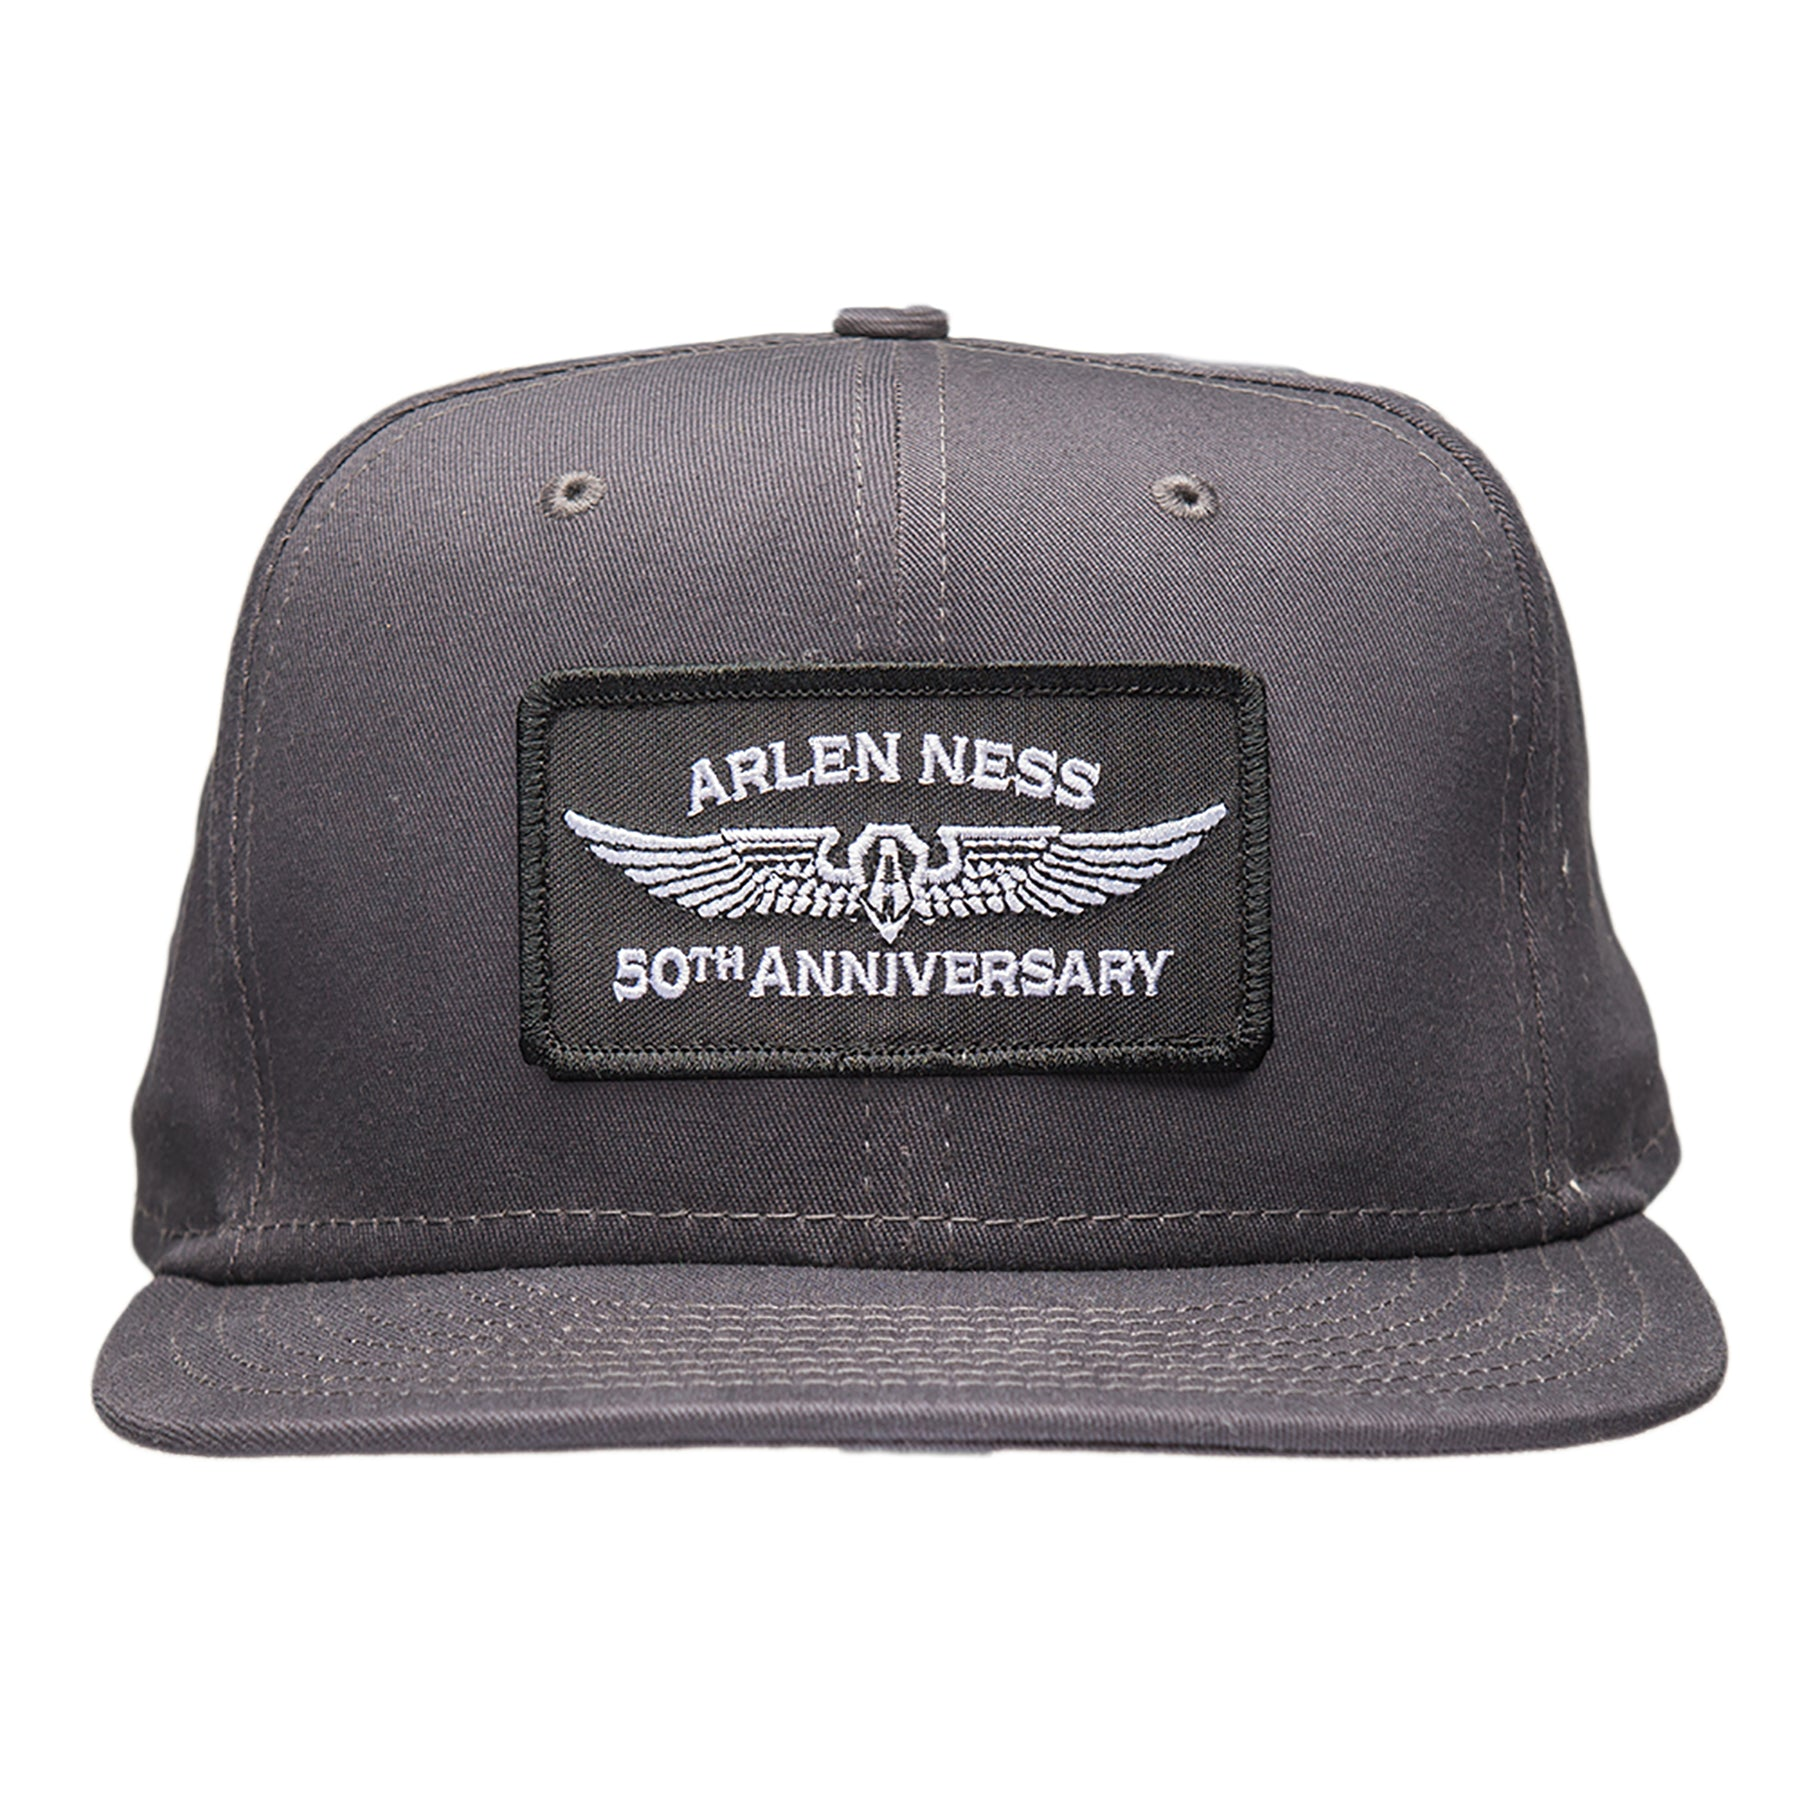 50th Anniversary Snapback Hat, Charcoal